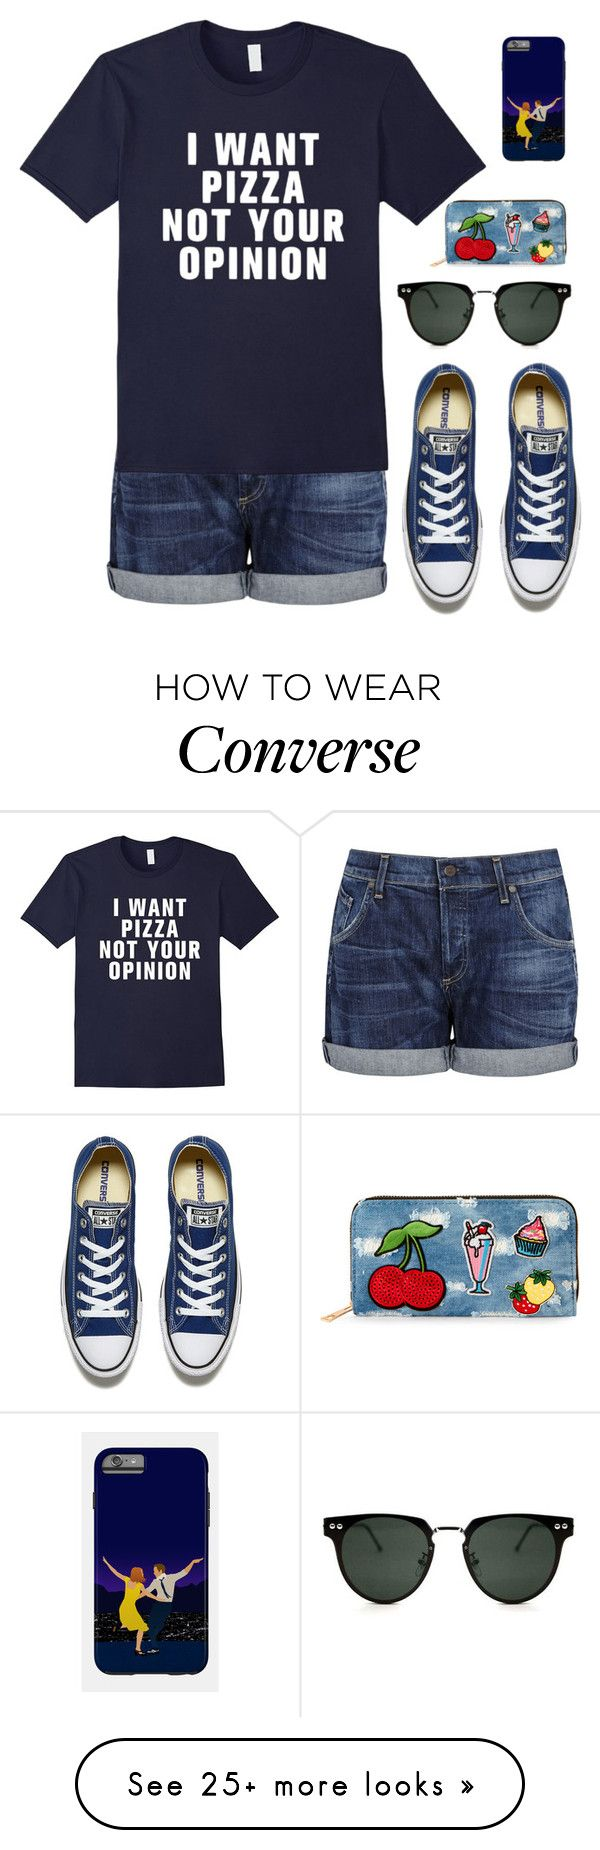 """Lazy shopping trip"" by lukeisalibero on Polyvore featuring Citizens of Humanity, Converse, Spitfire and Viola"